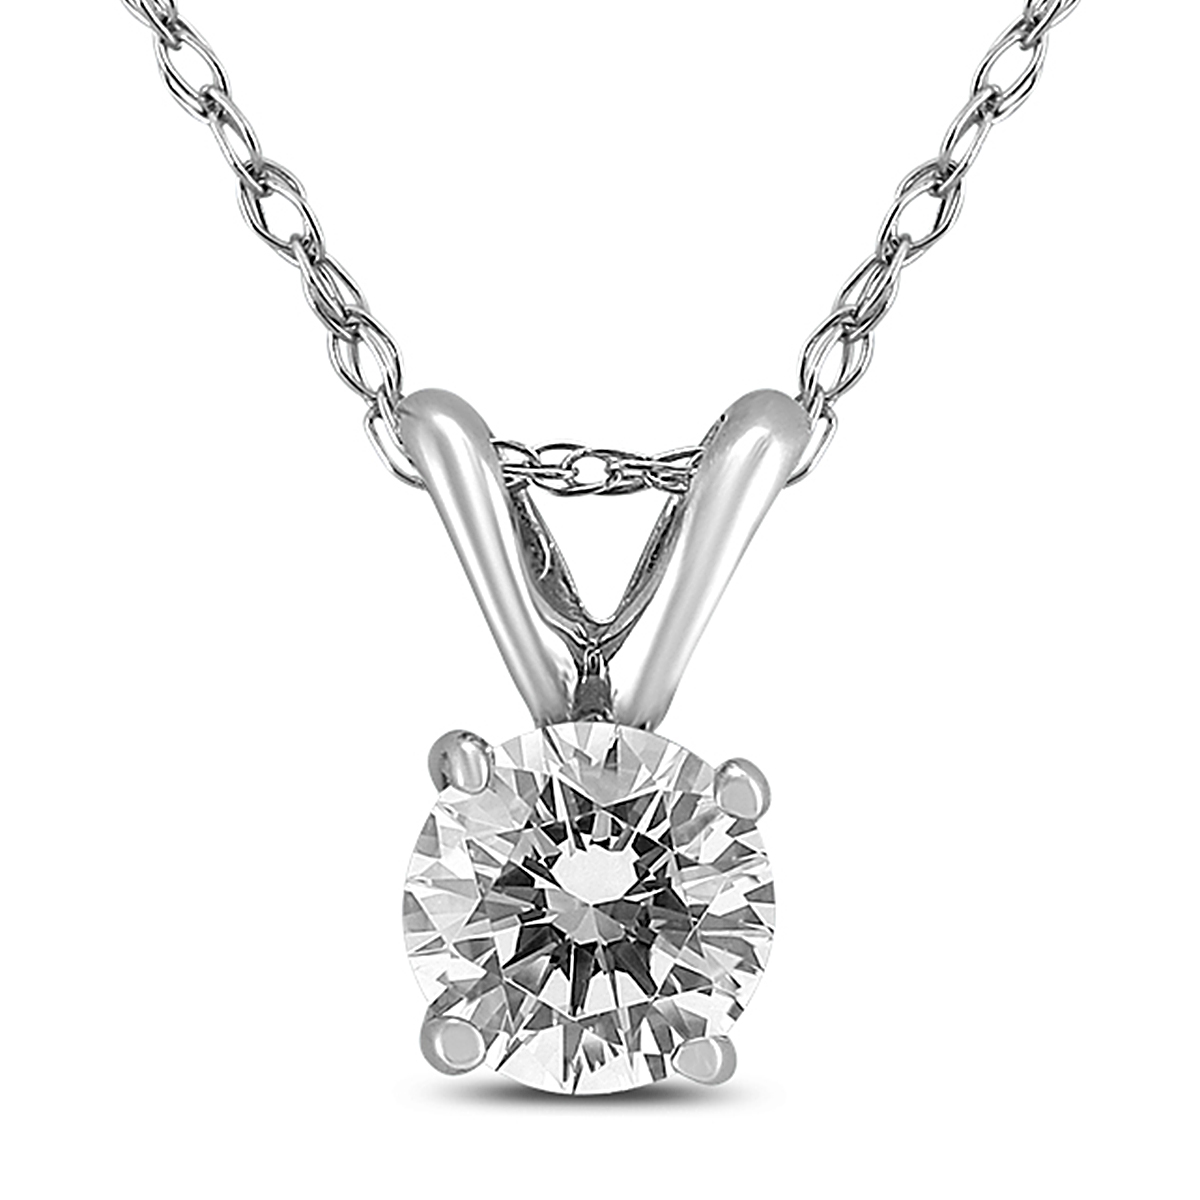 54c45db03884f Hot Jewelry Deals w/Free Shipping & Discount Coupons | eDealinfo.com